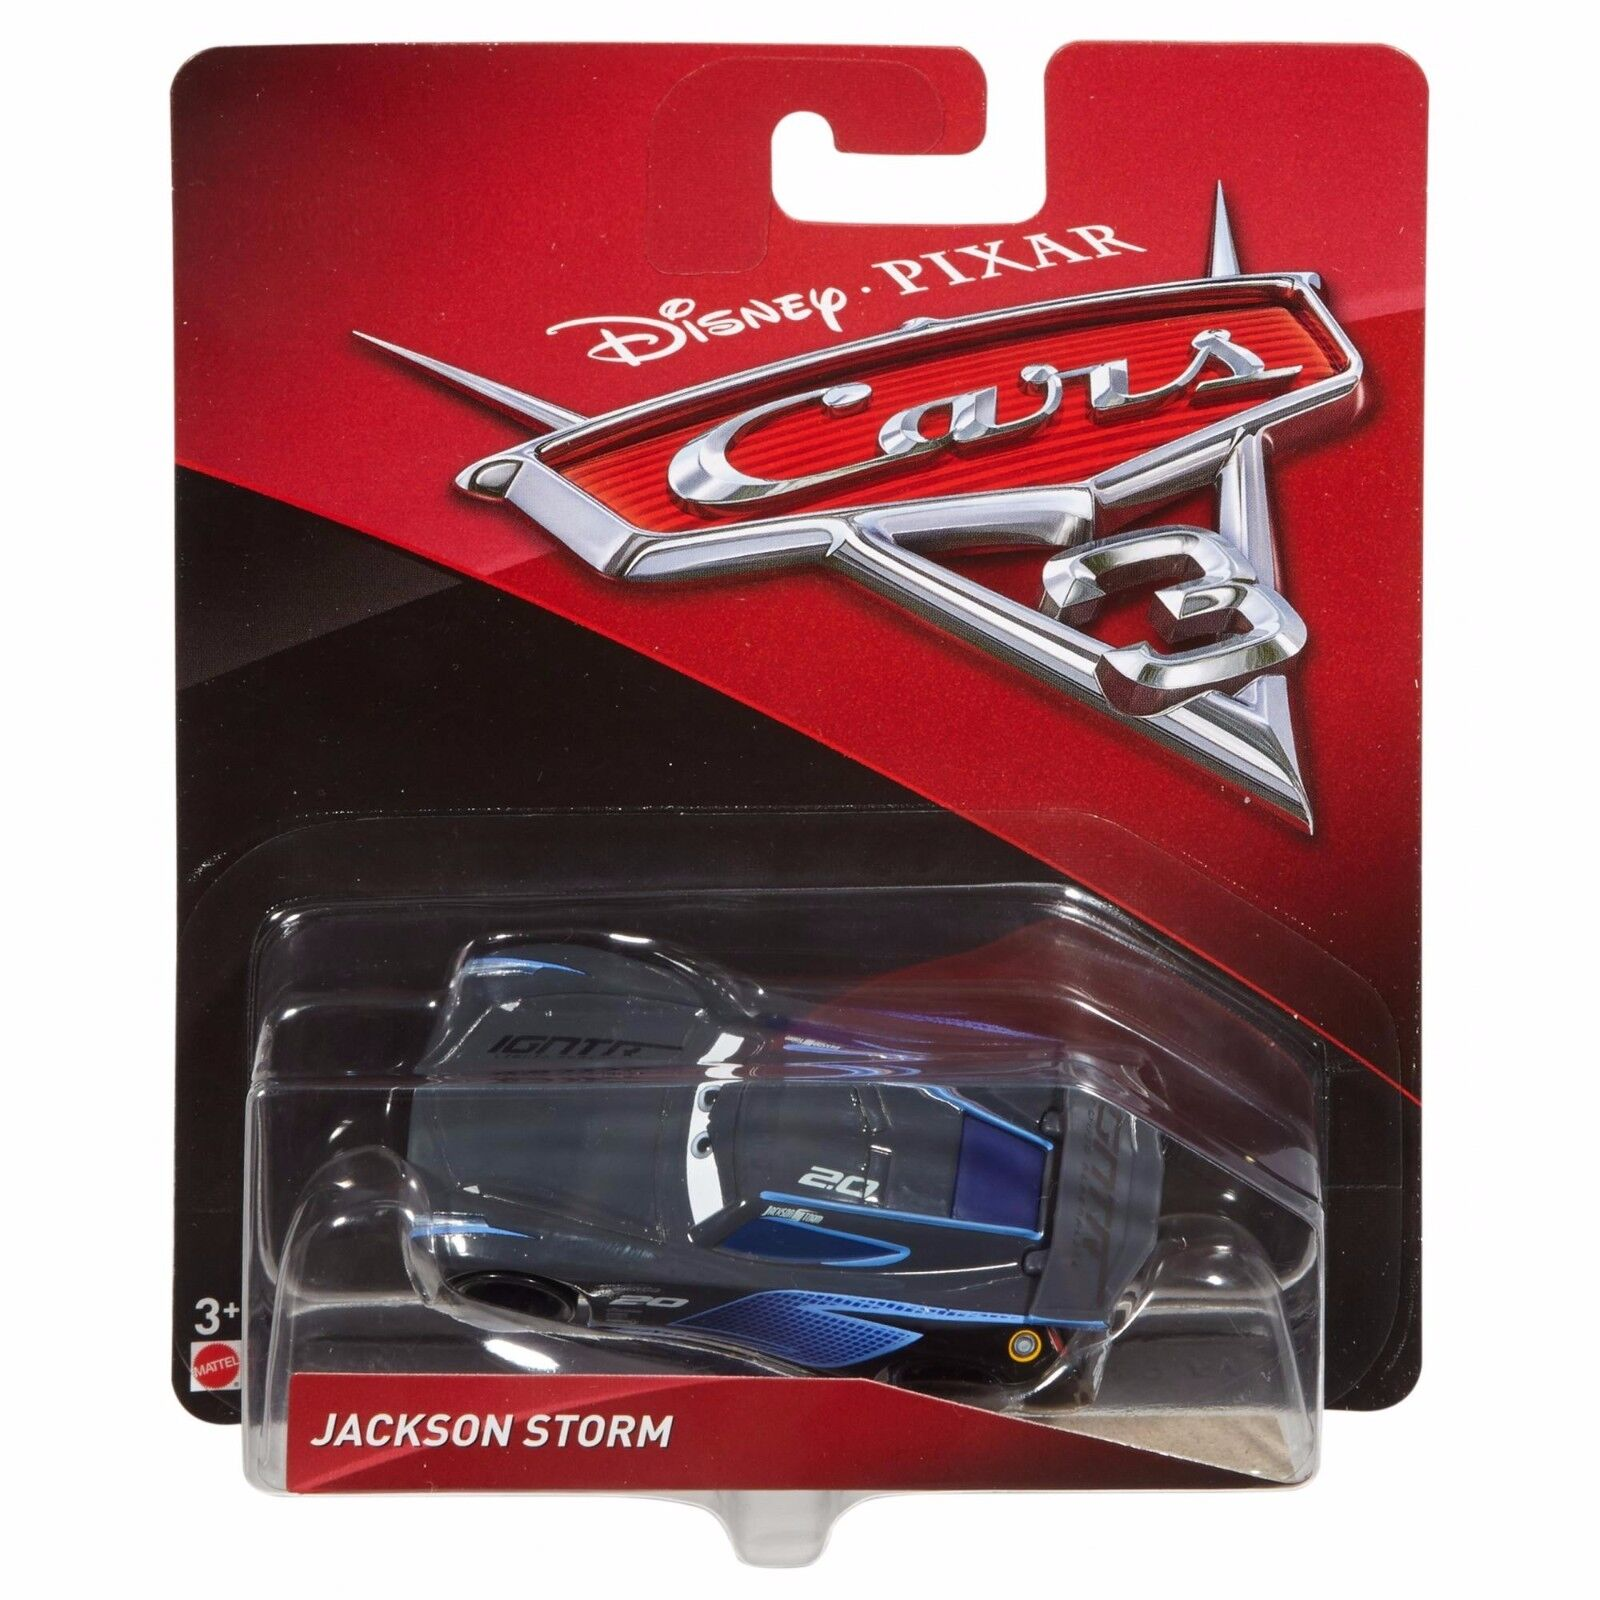 Купить Mattel - NEW! Disney-Pixar Cars 3 Jackson Storm Diecast # 20 1:55 Scale Die-cast Vehicle